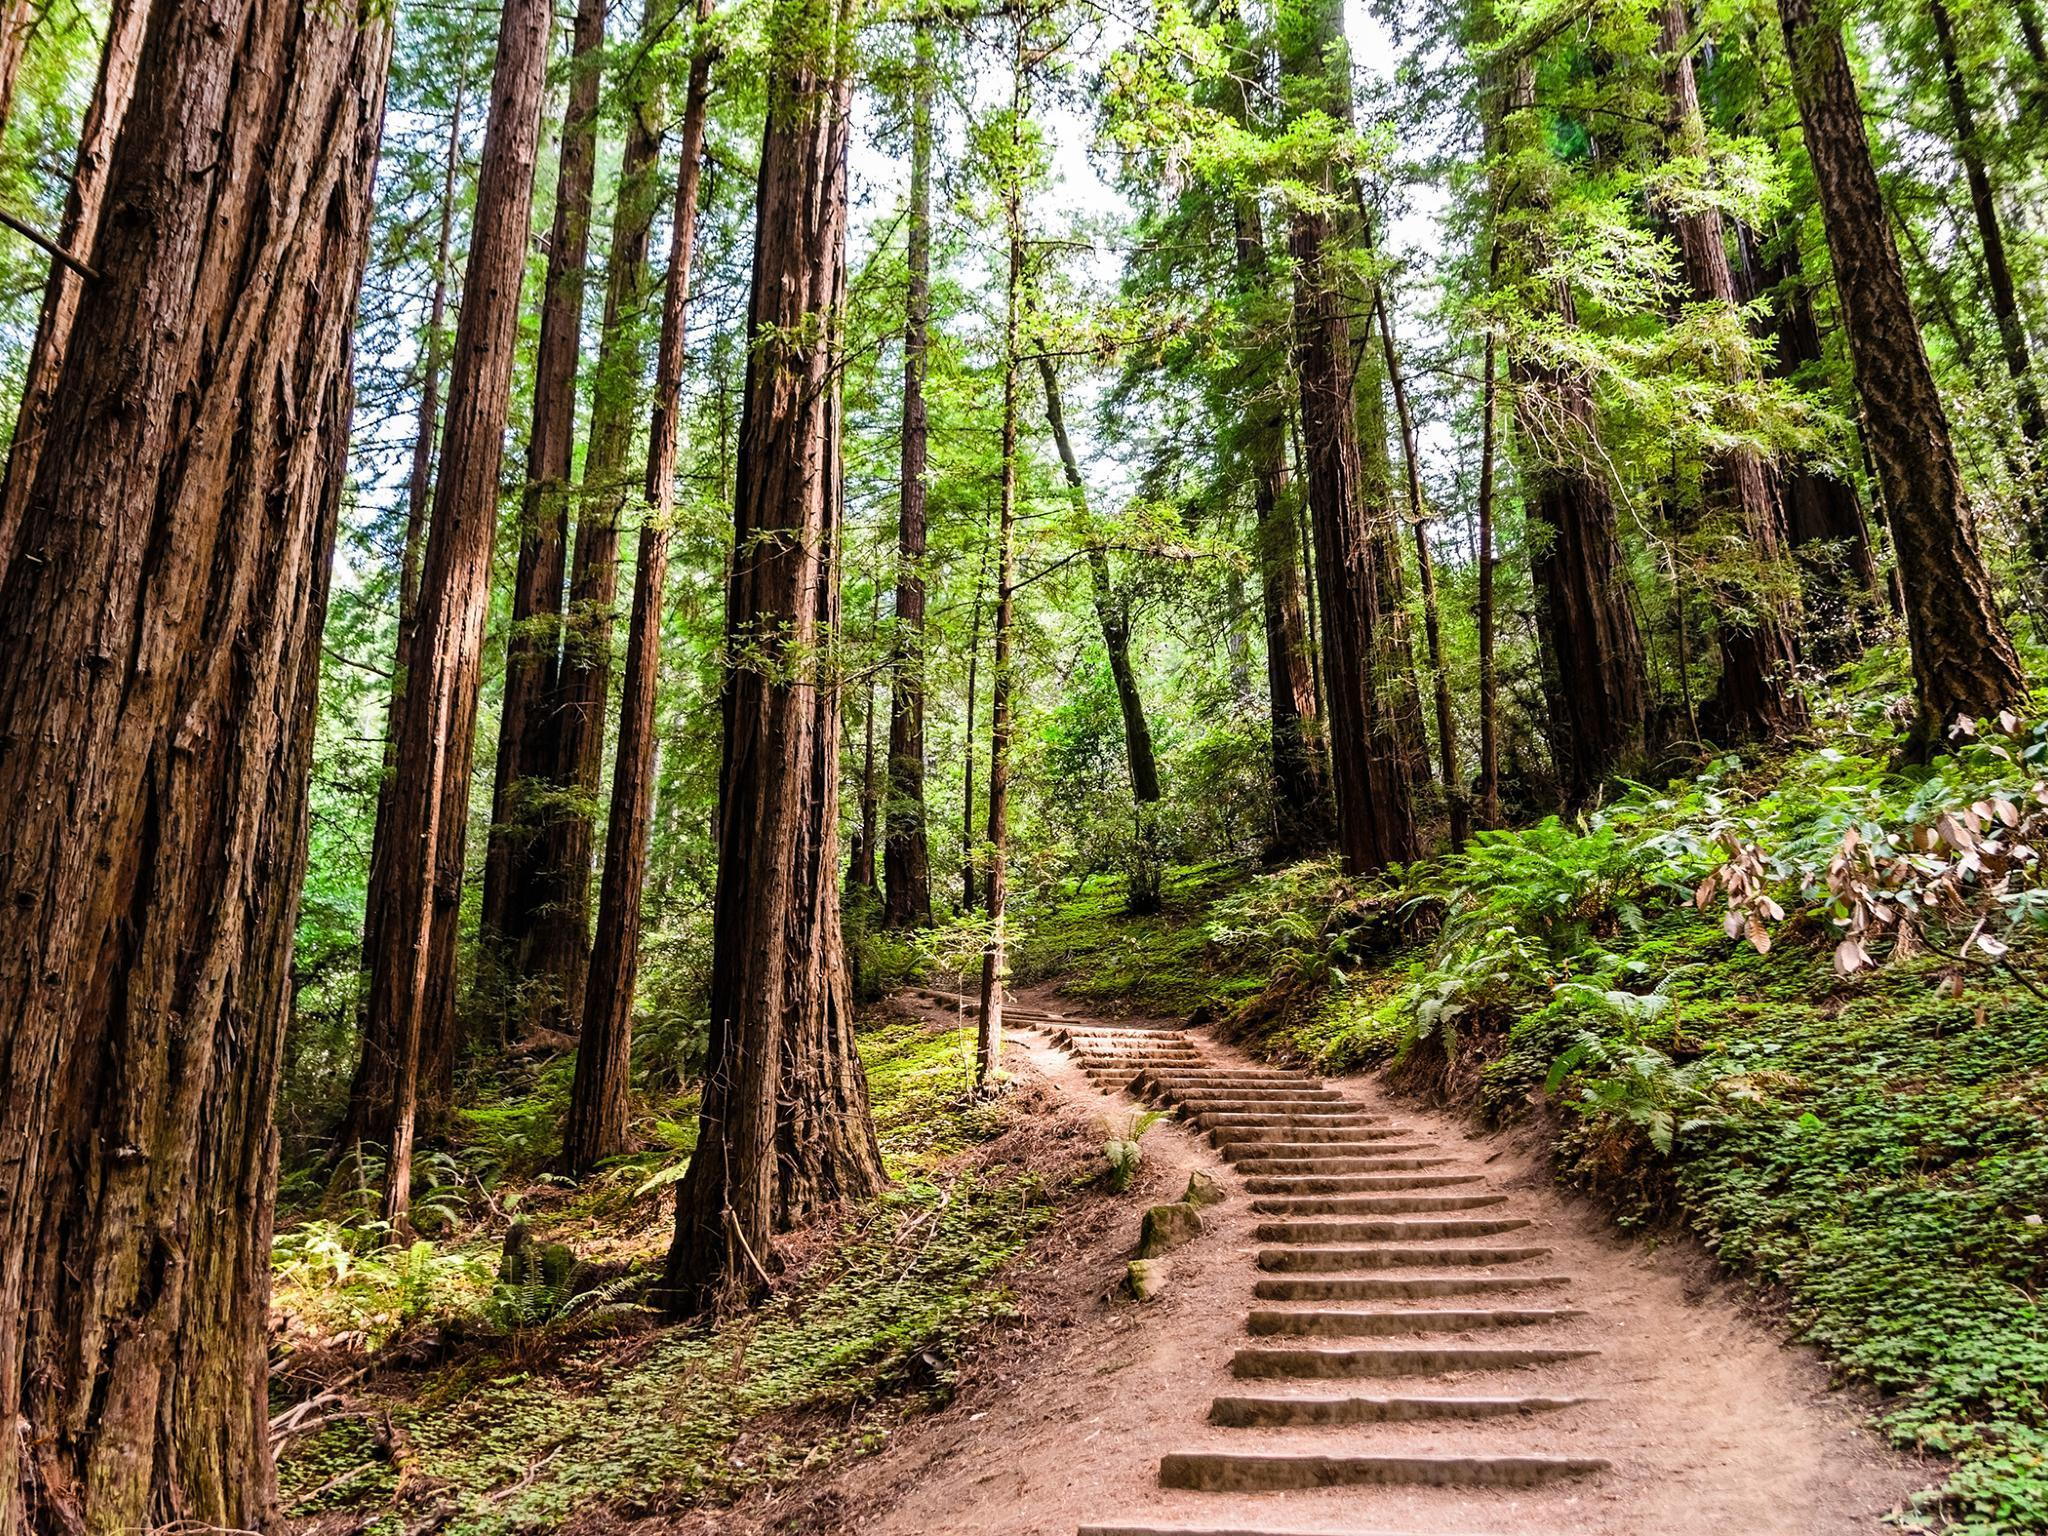 Californian redwood forests